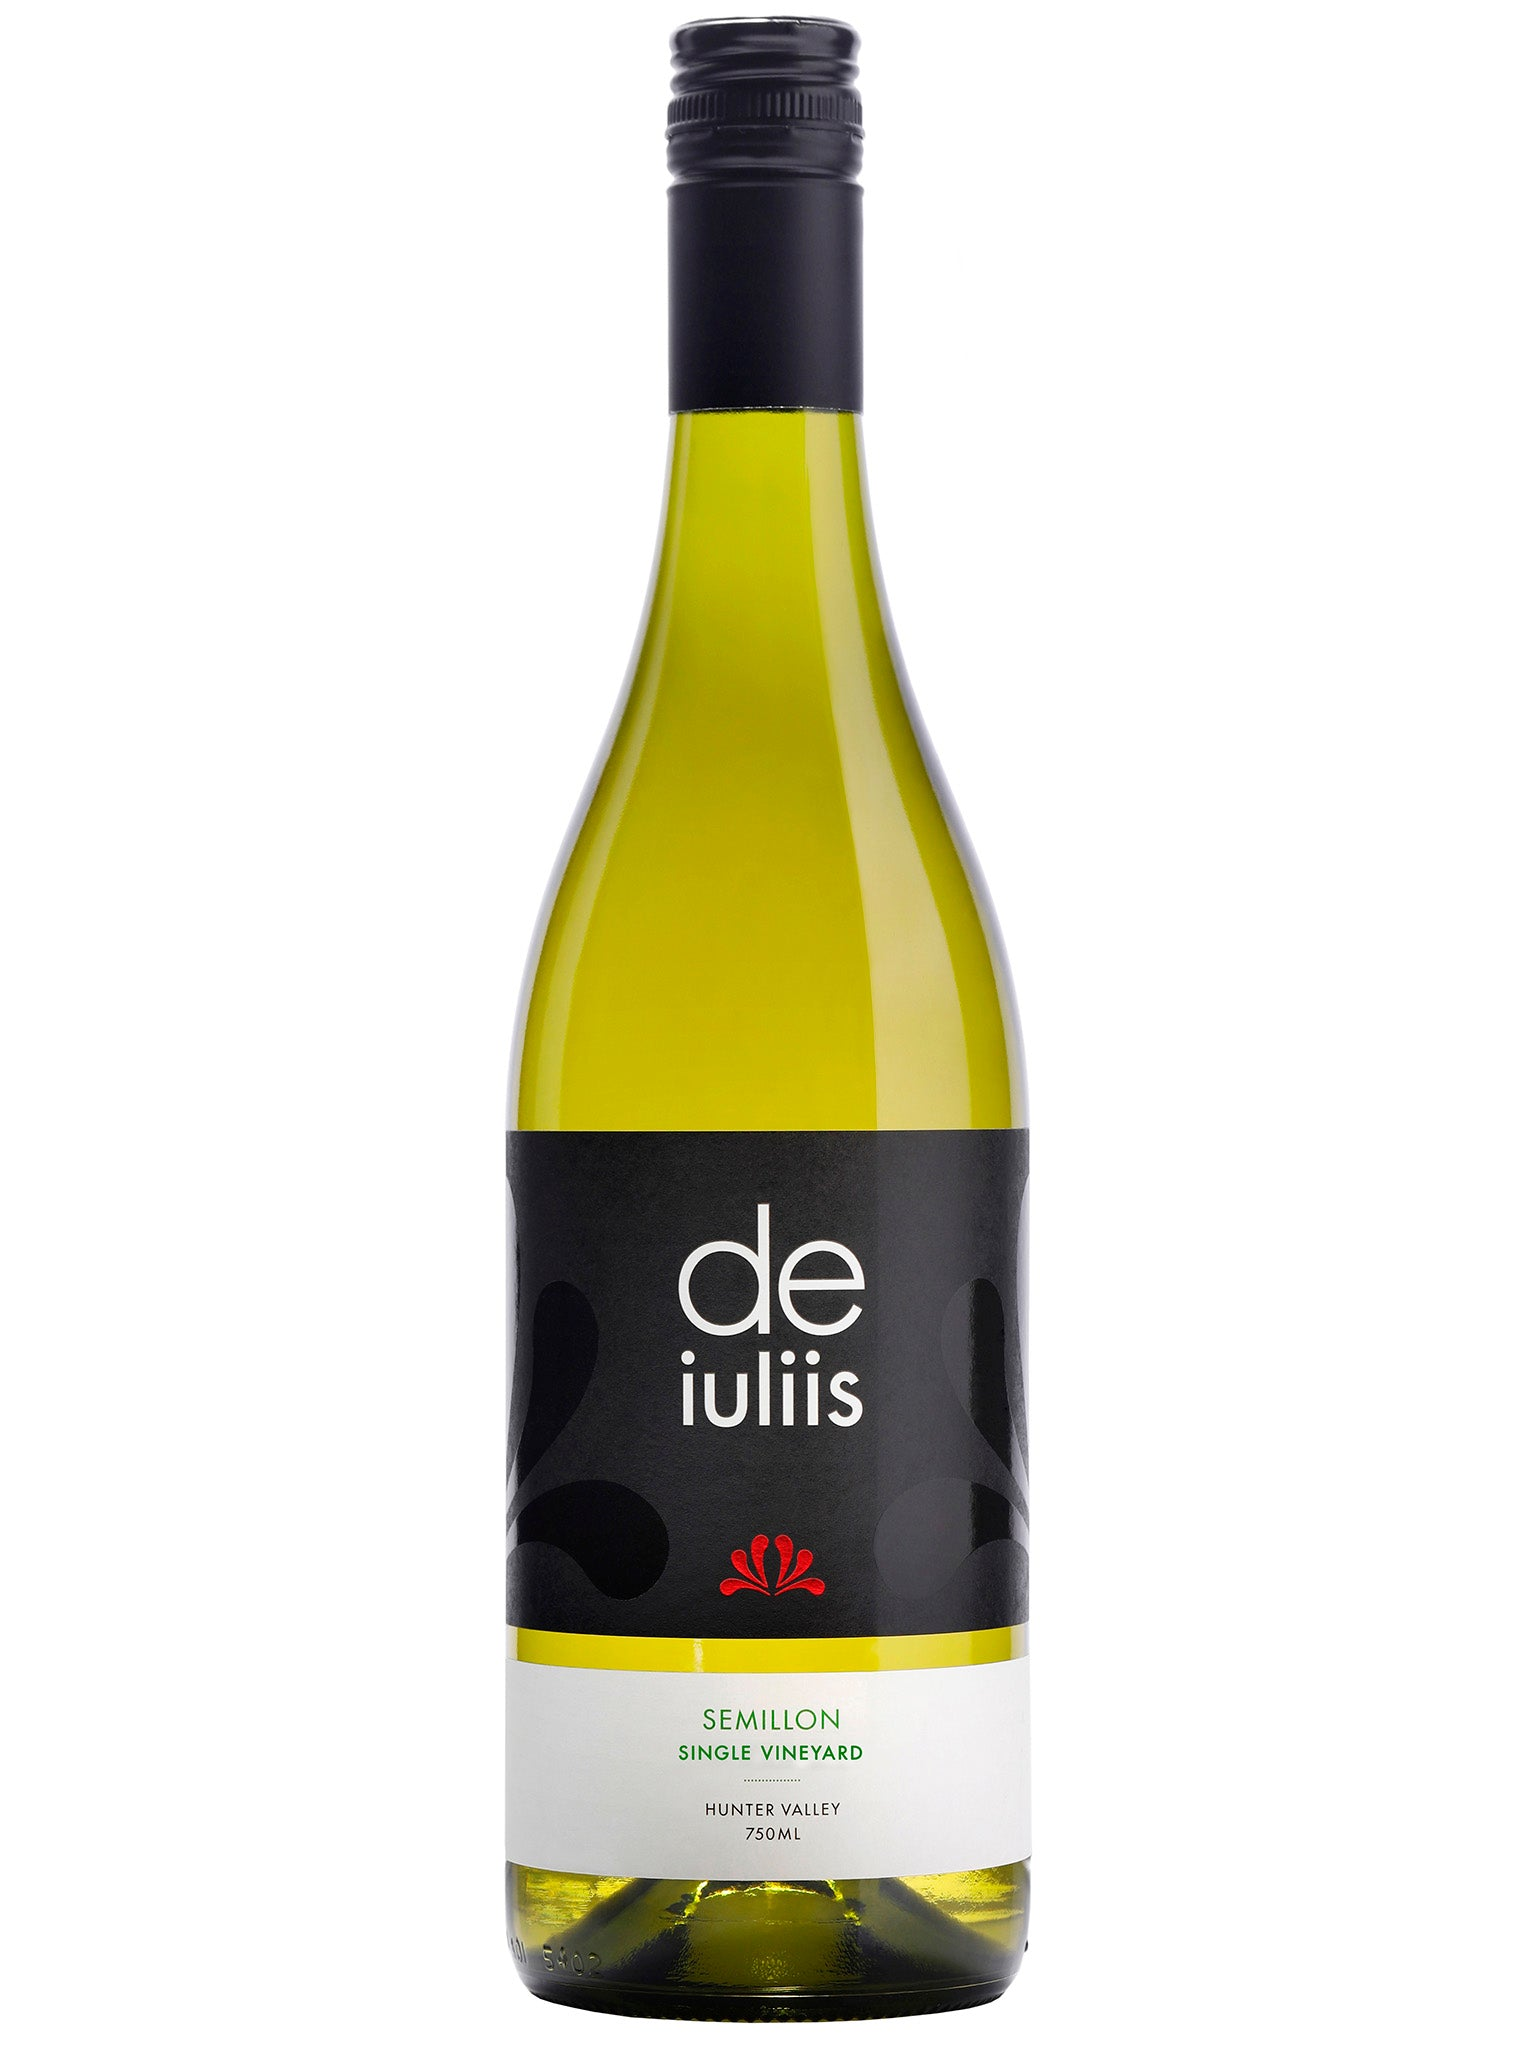 De Iuliis Single Vineyard Semillon 12pk 2019